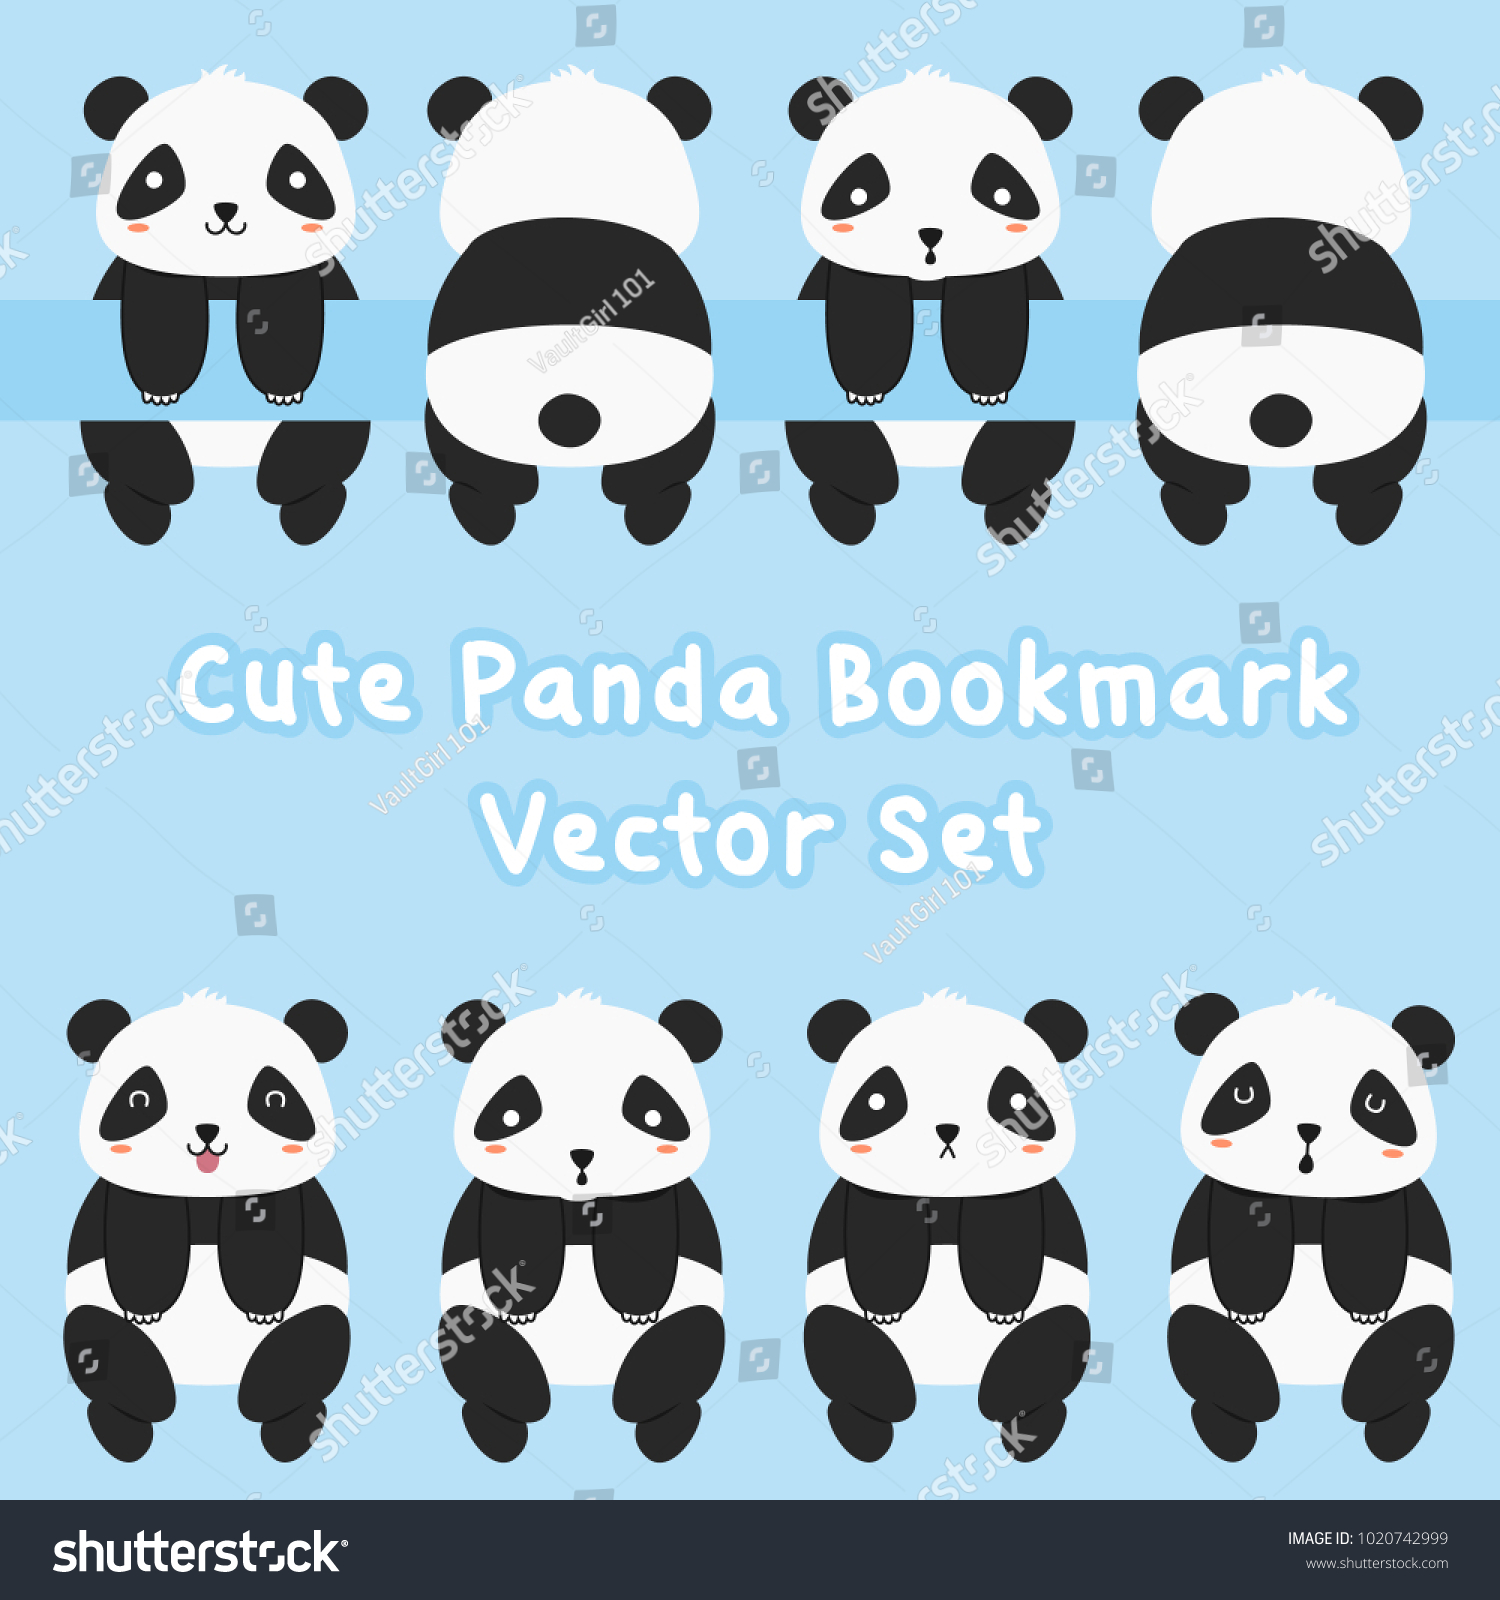 animal printable bookmark template cute panda stock vector (royalty